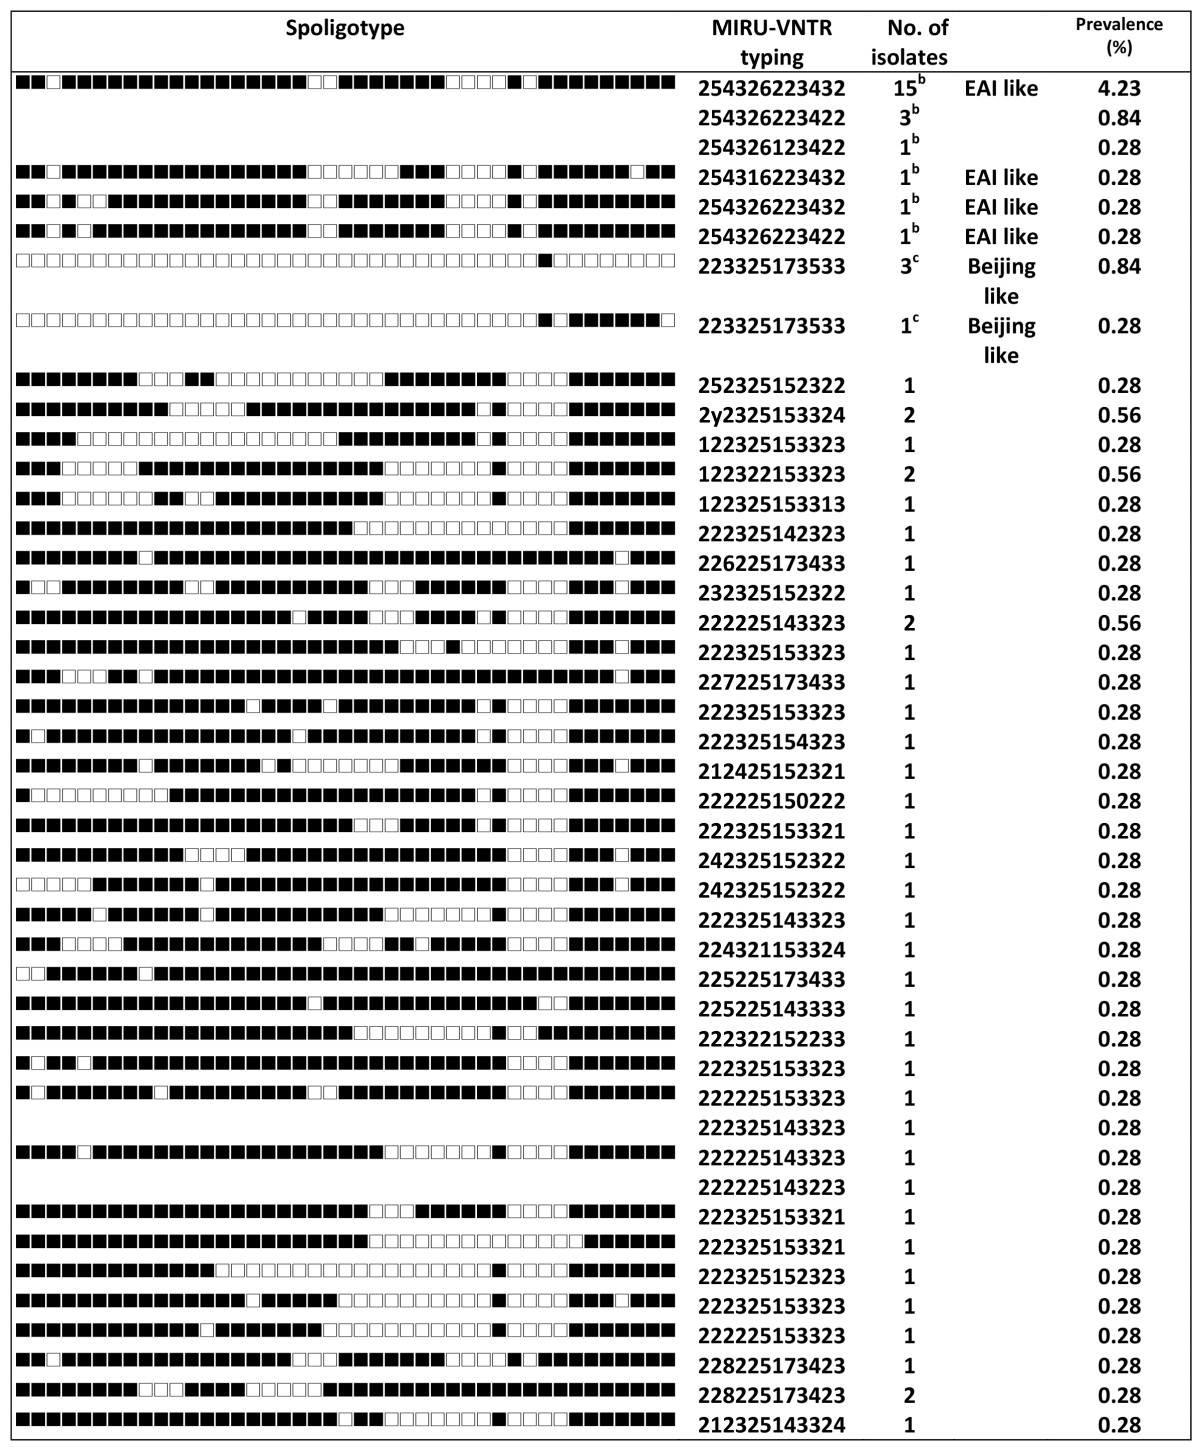 https://static-content.springer.com/image/art%3A10.1186%2F1471-2334-8-170/MediaObjects/12879_2008_Article_761_Fig2_HTML.jpg